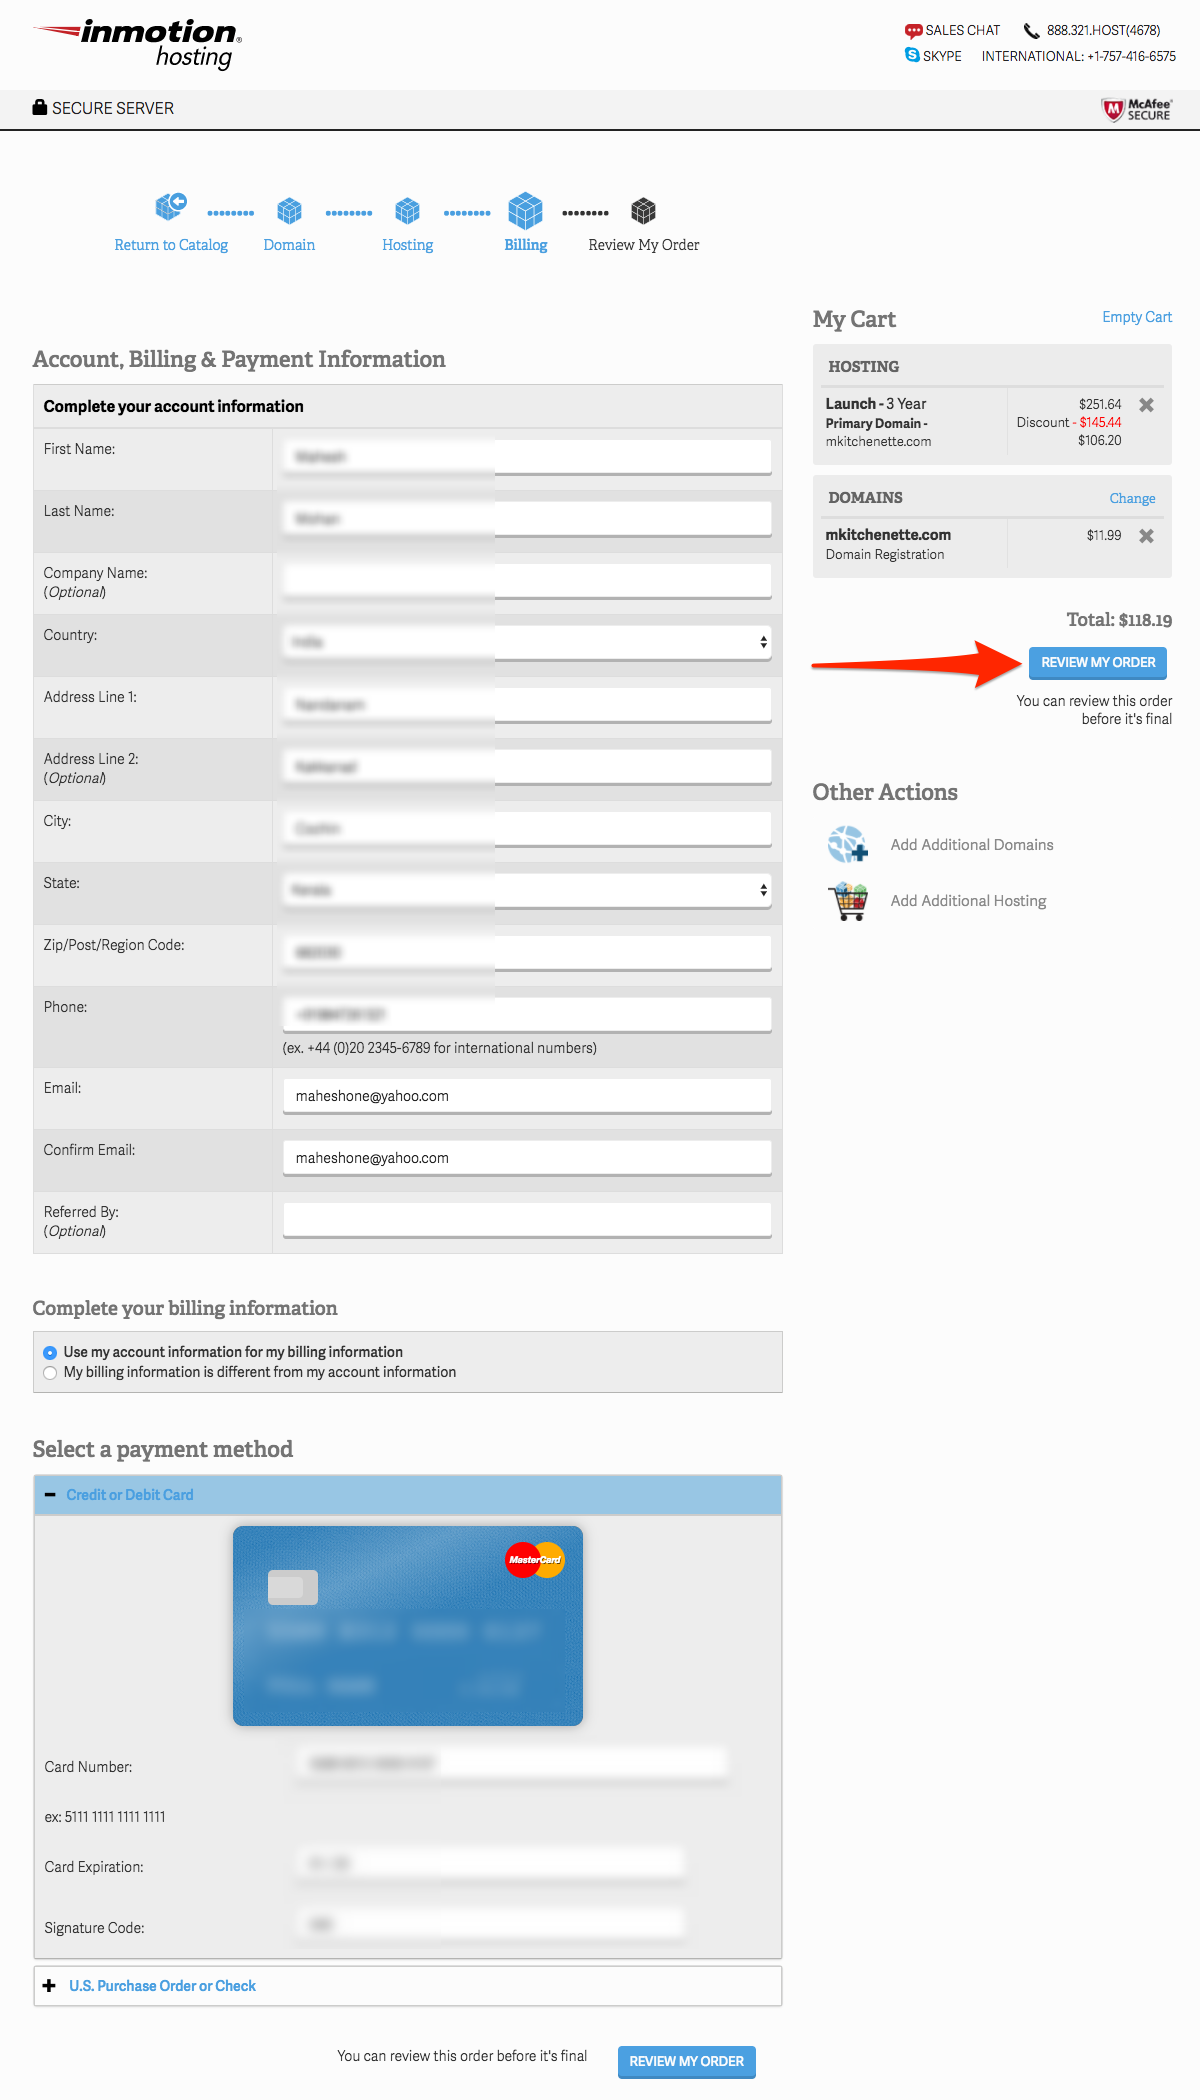 Account, Billing, & Payment Information